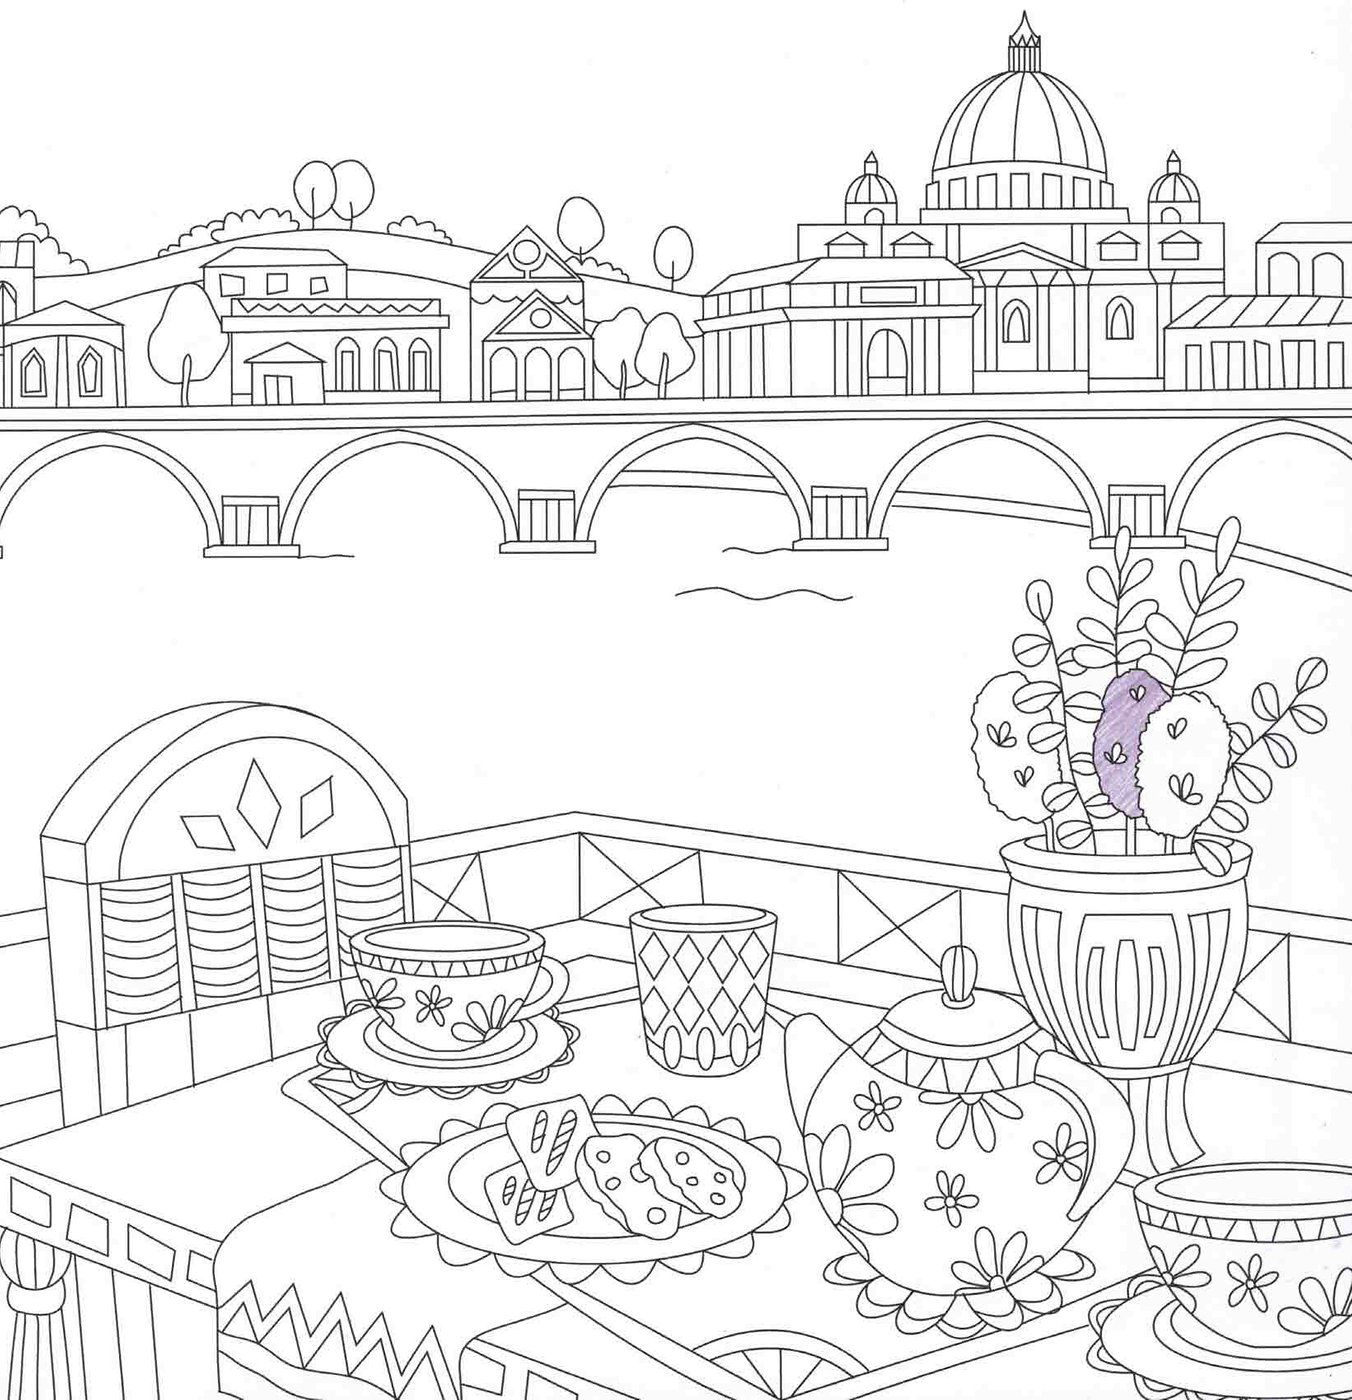 coloring pages italy - photo#10